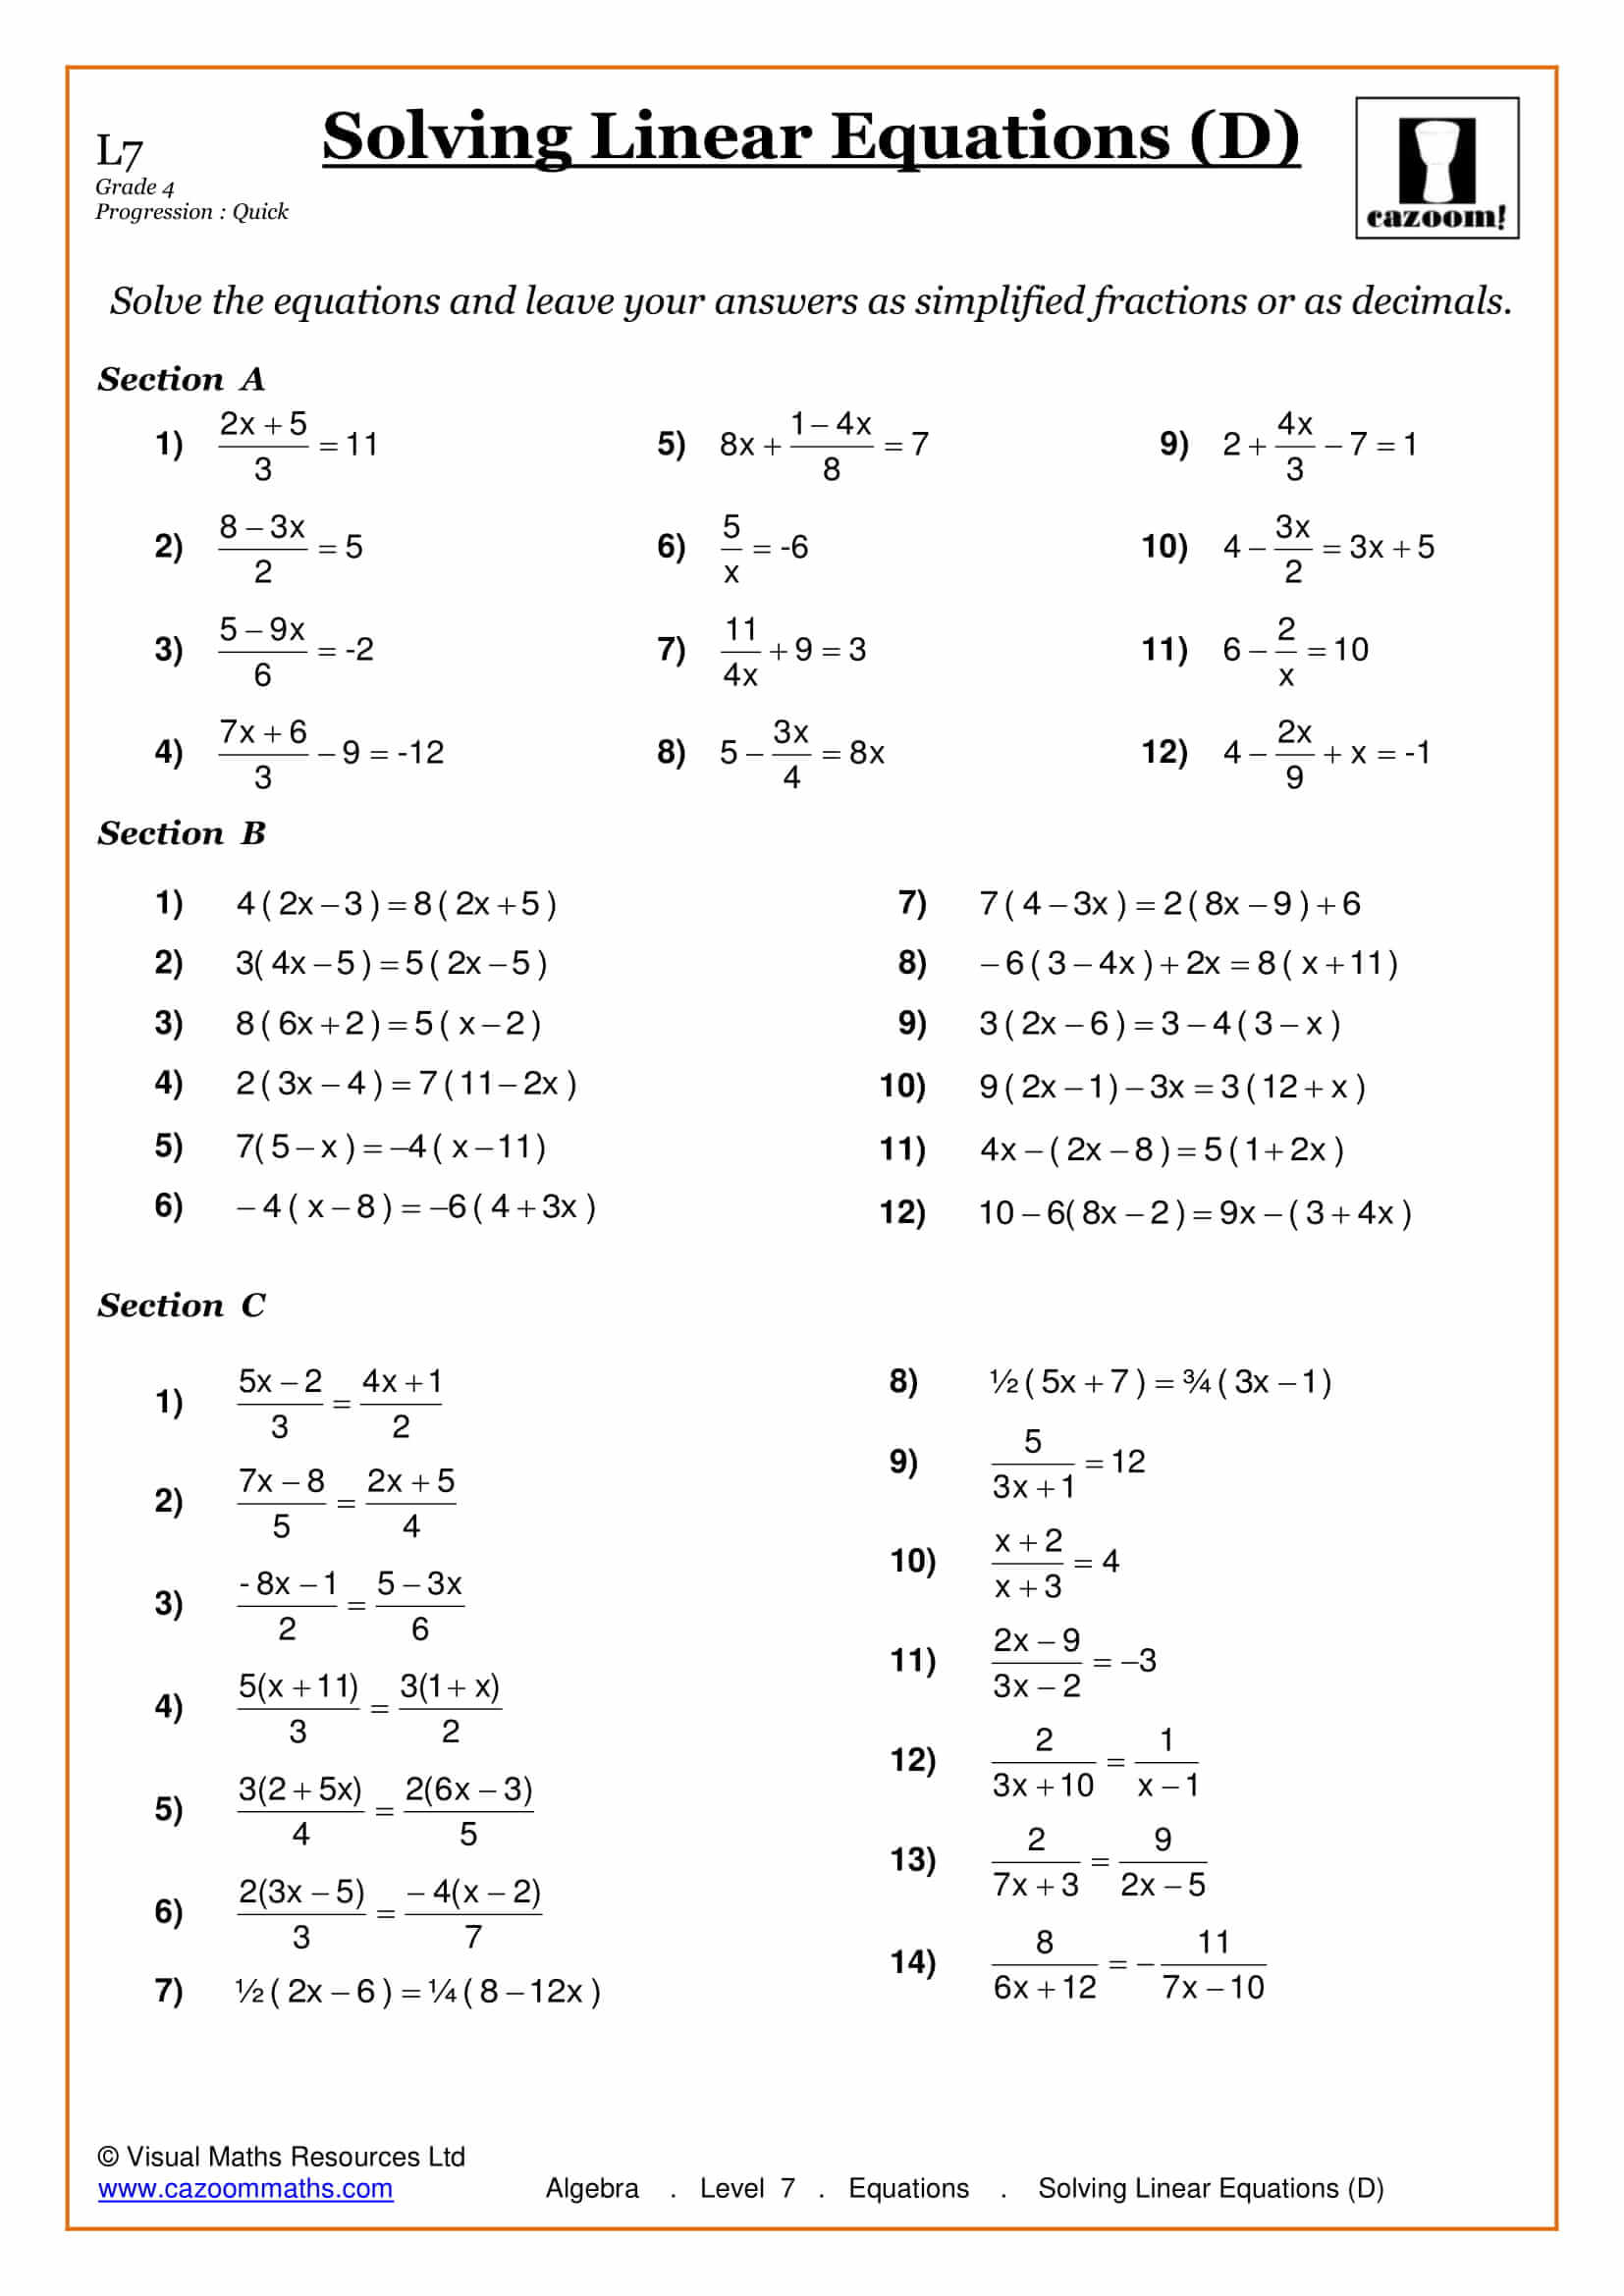 Year 7 Math Worksheet Australia